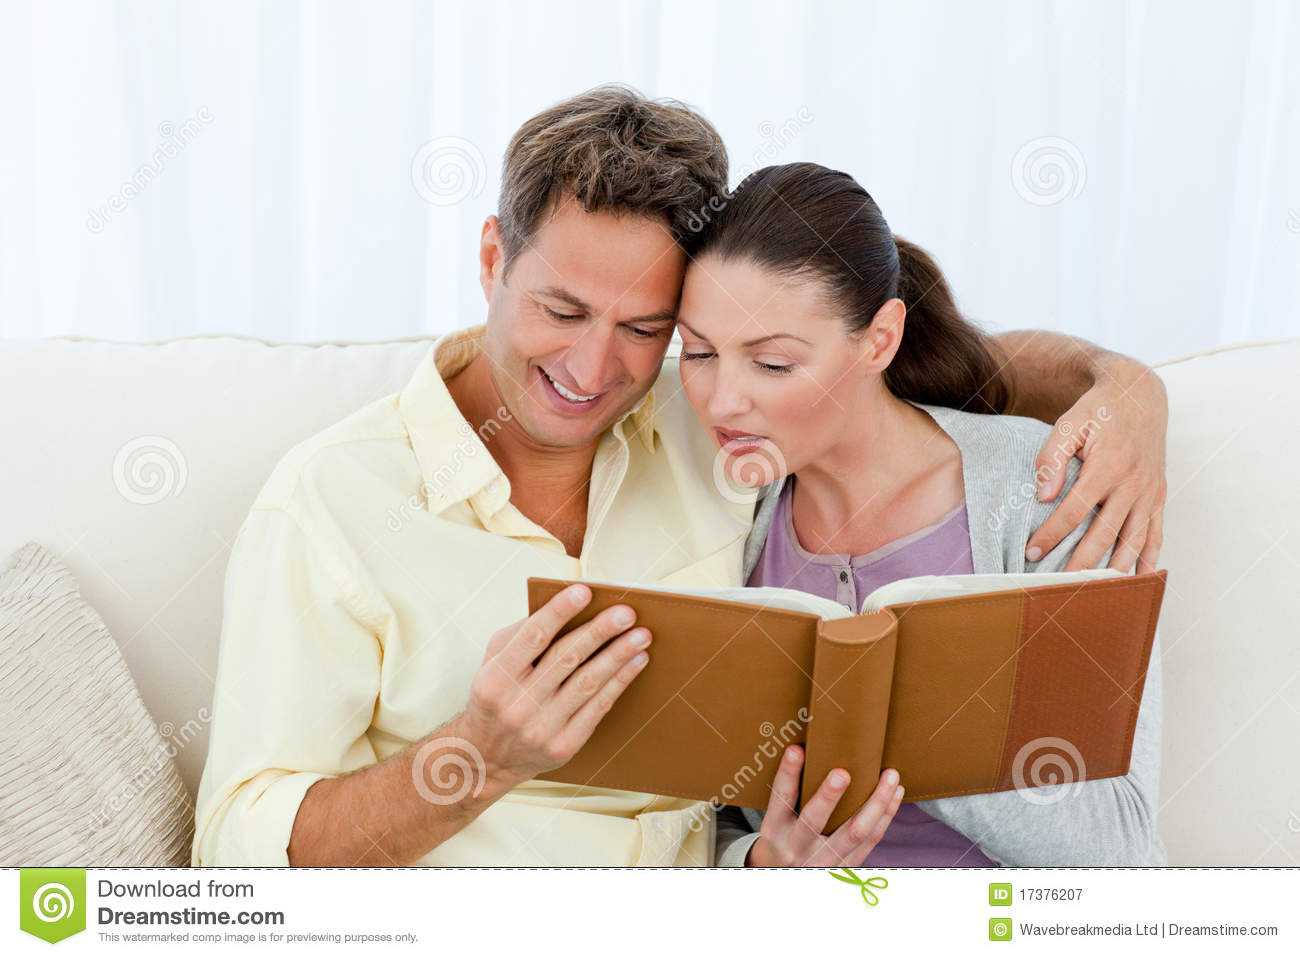 Attentive man and woman looking at a photo album